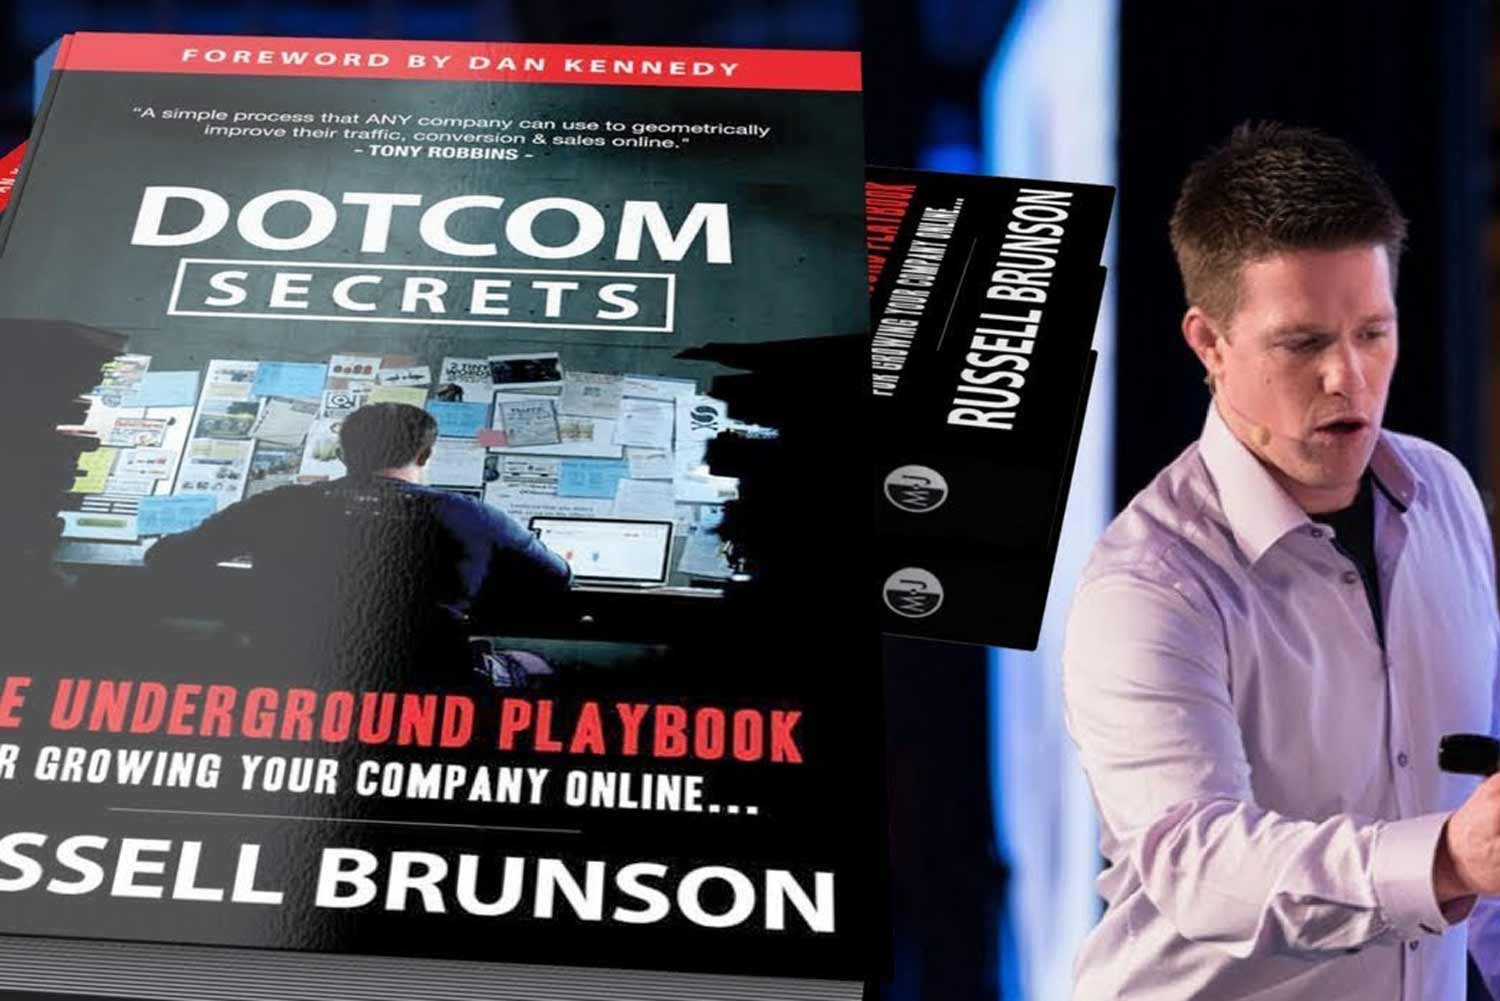 Dotcom Secrets by Russel Brunson